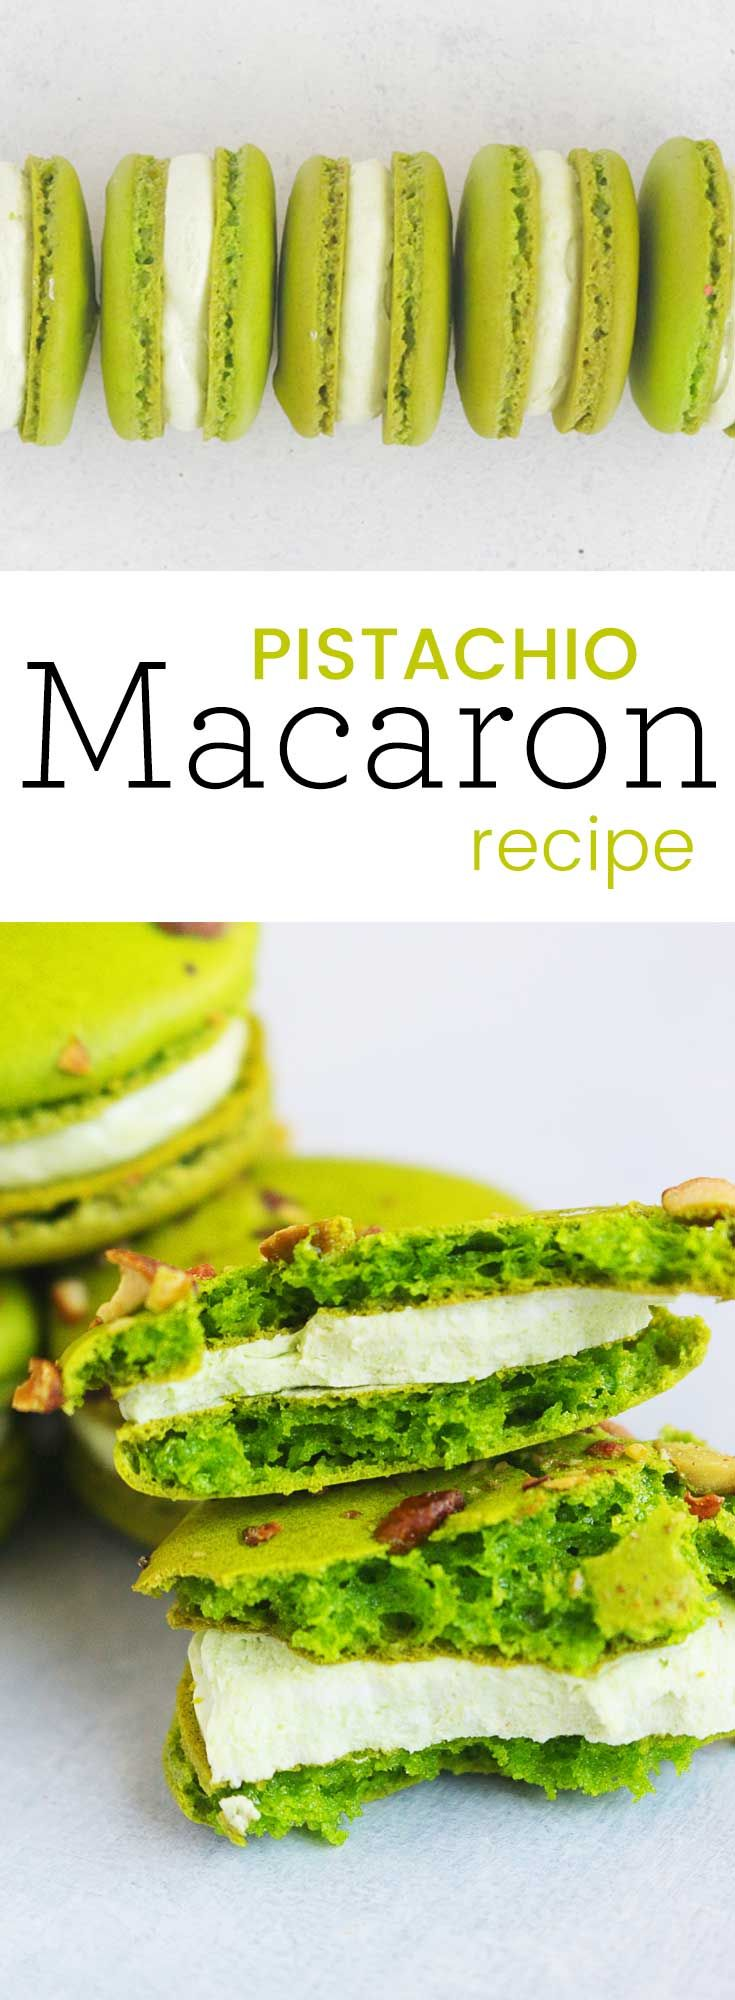 These are the BEST Pistachio Macarons you'll ever put in your mouth. The recipe is surprisingly easy and so customizable to any flavor you wish! Stop by and get it today! via @karascakes